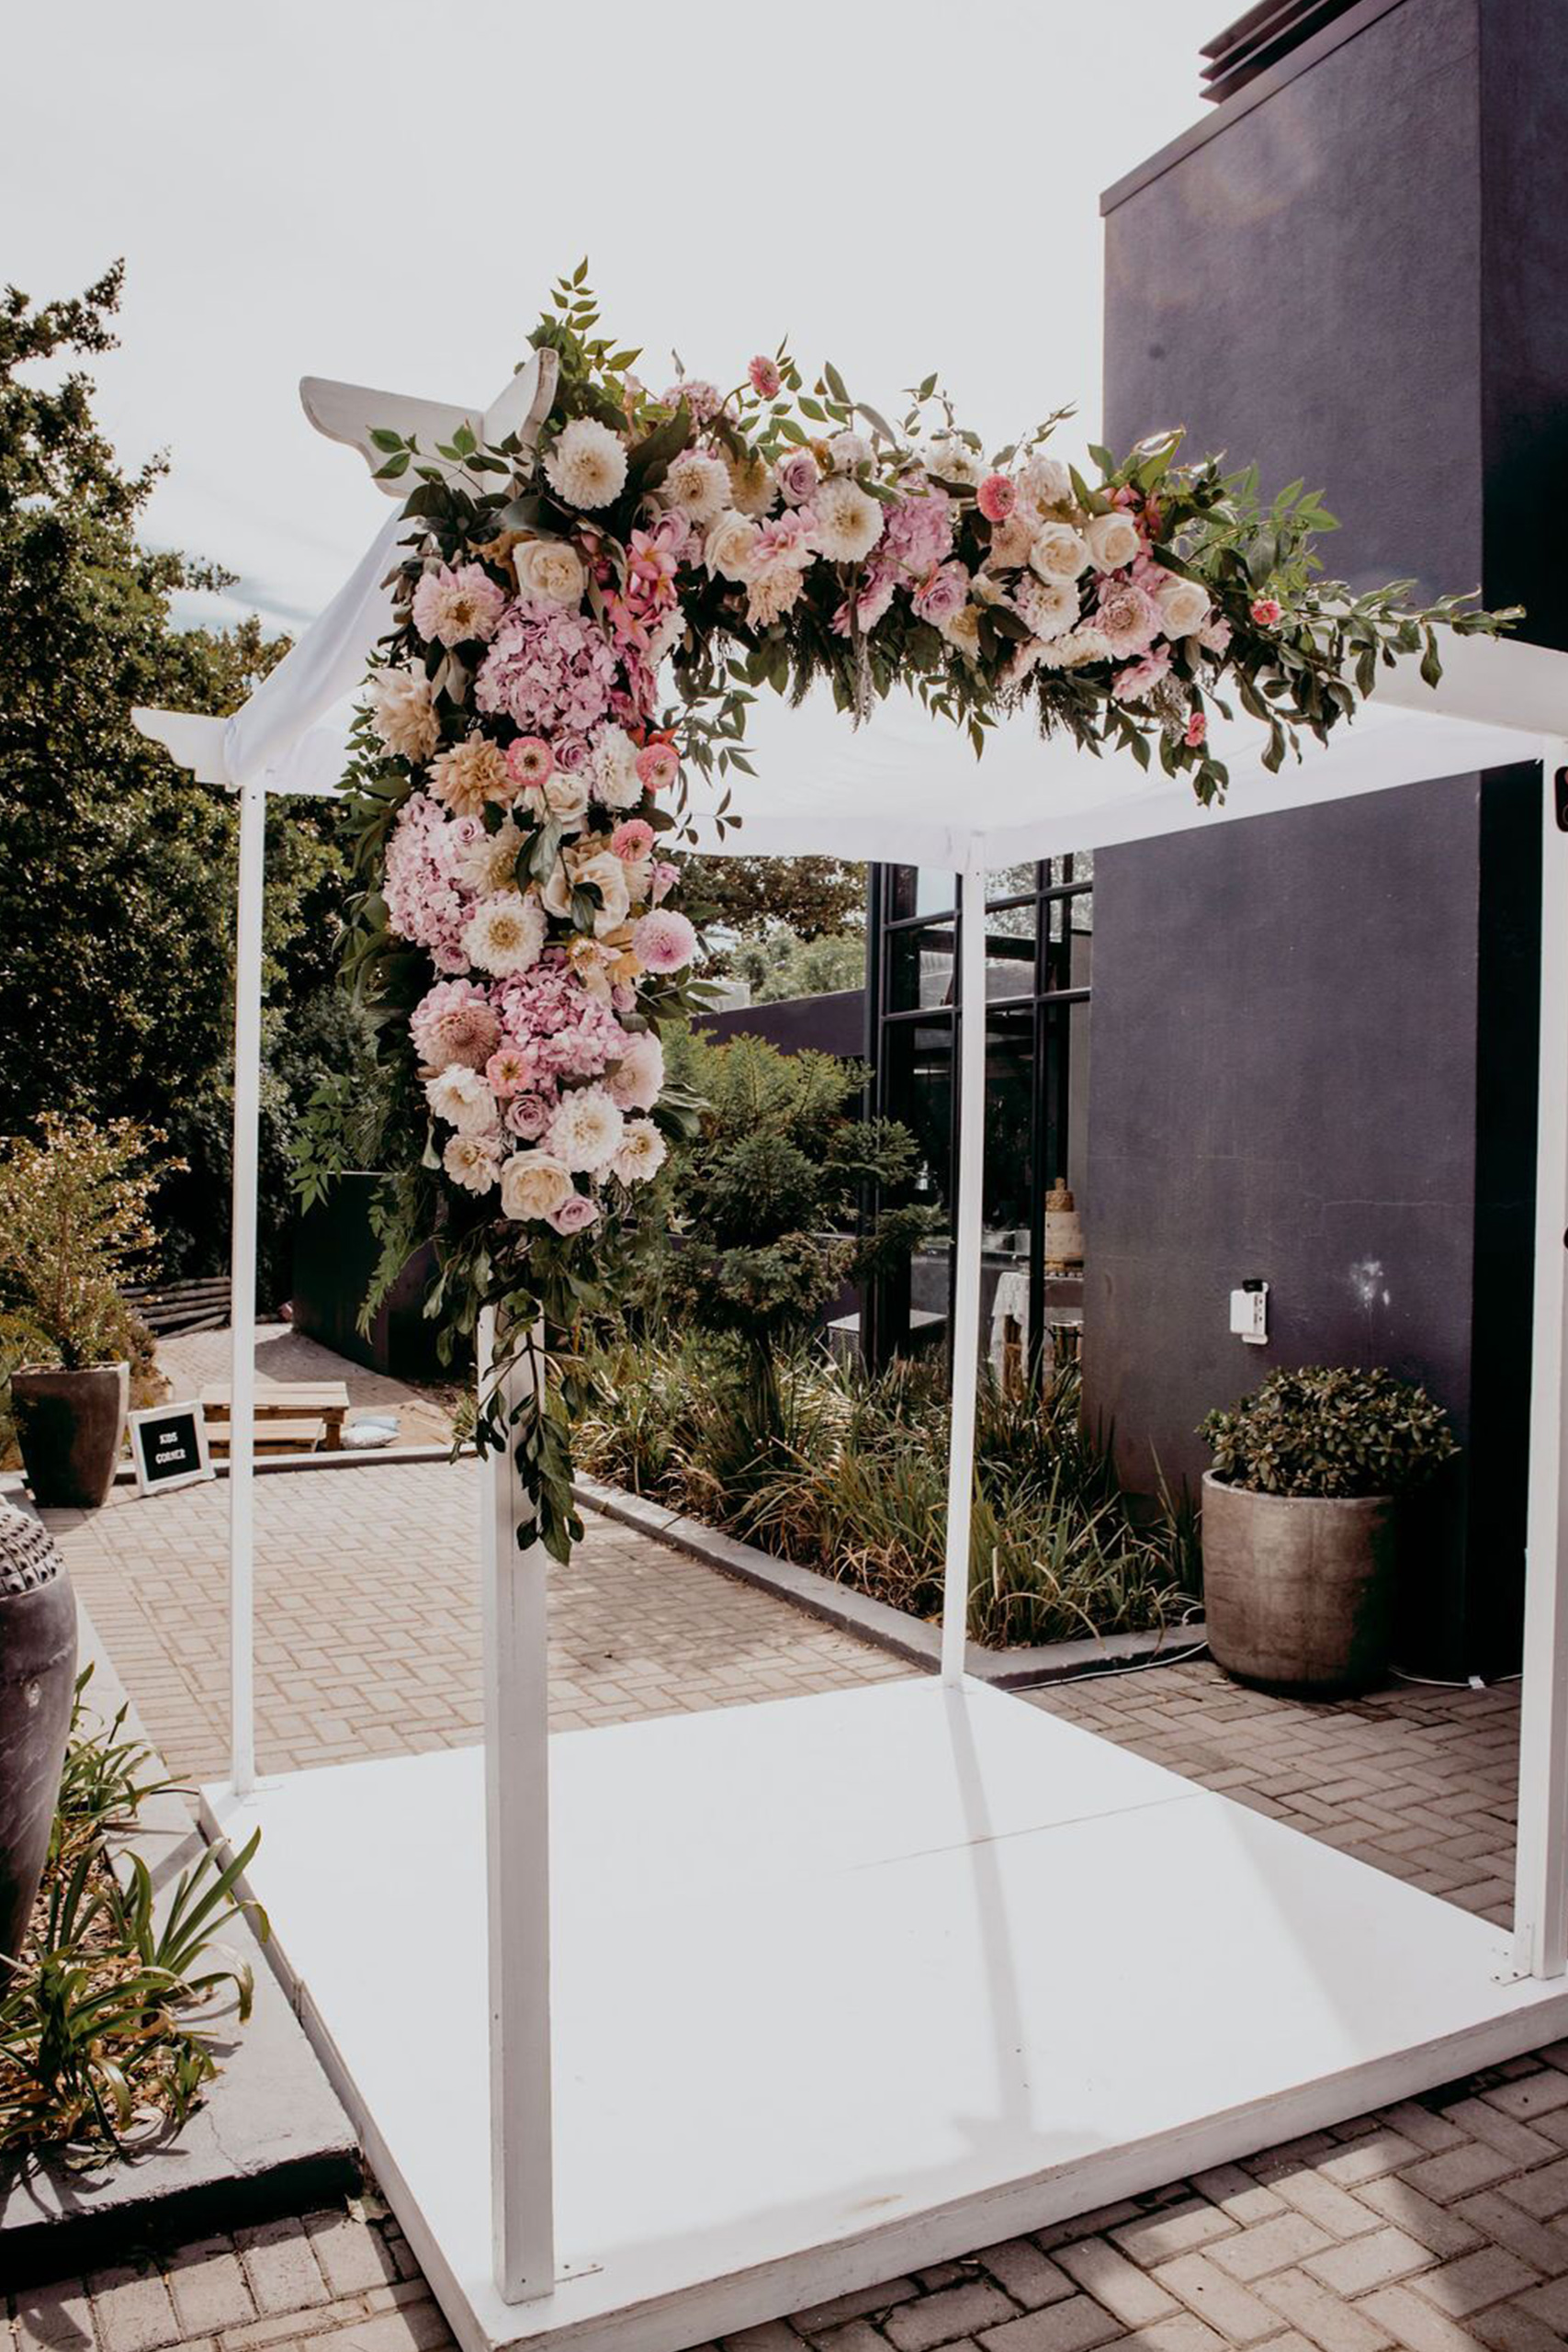 My Pretty Vintage Floral Design and Decor Hire - Flowers Cape Town